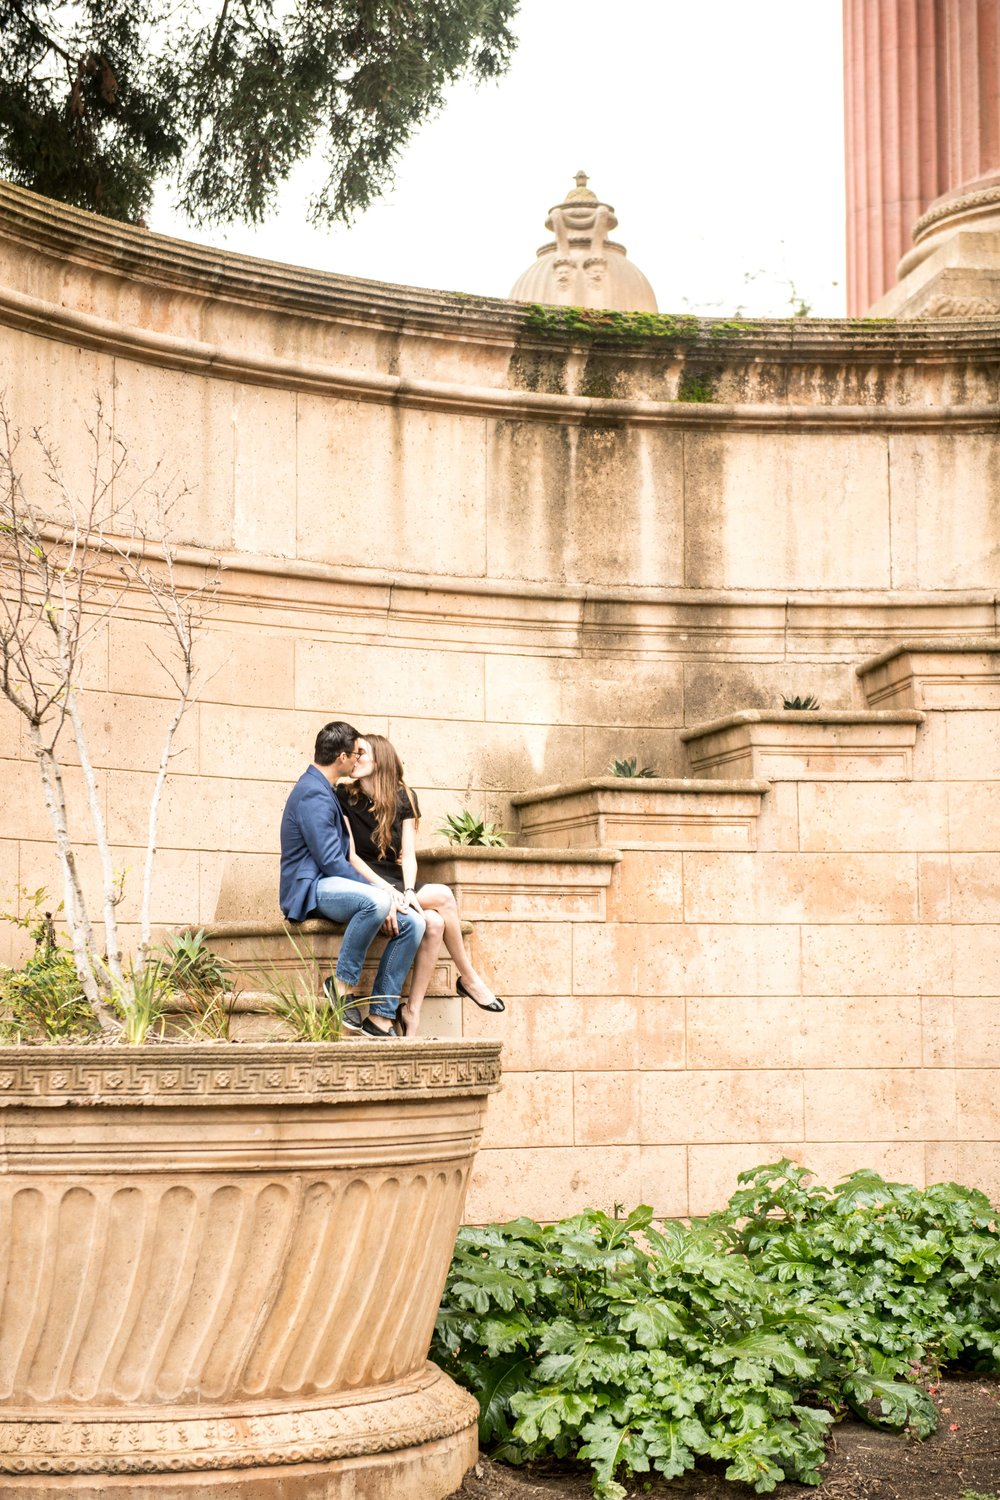 Palace-of-Fine-Arts-Engagement-Photography-4.jpg